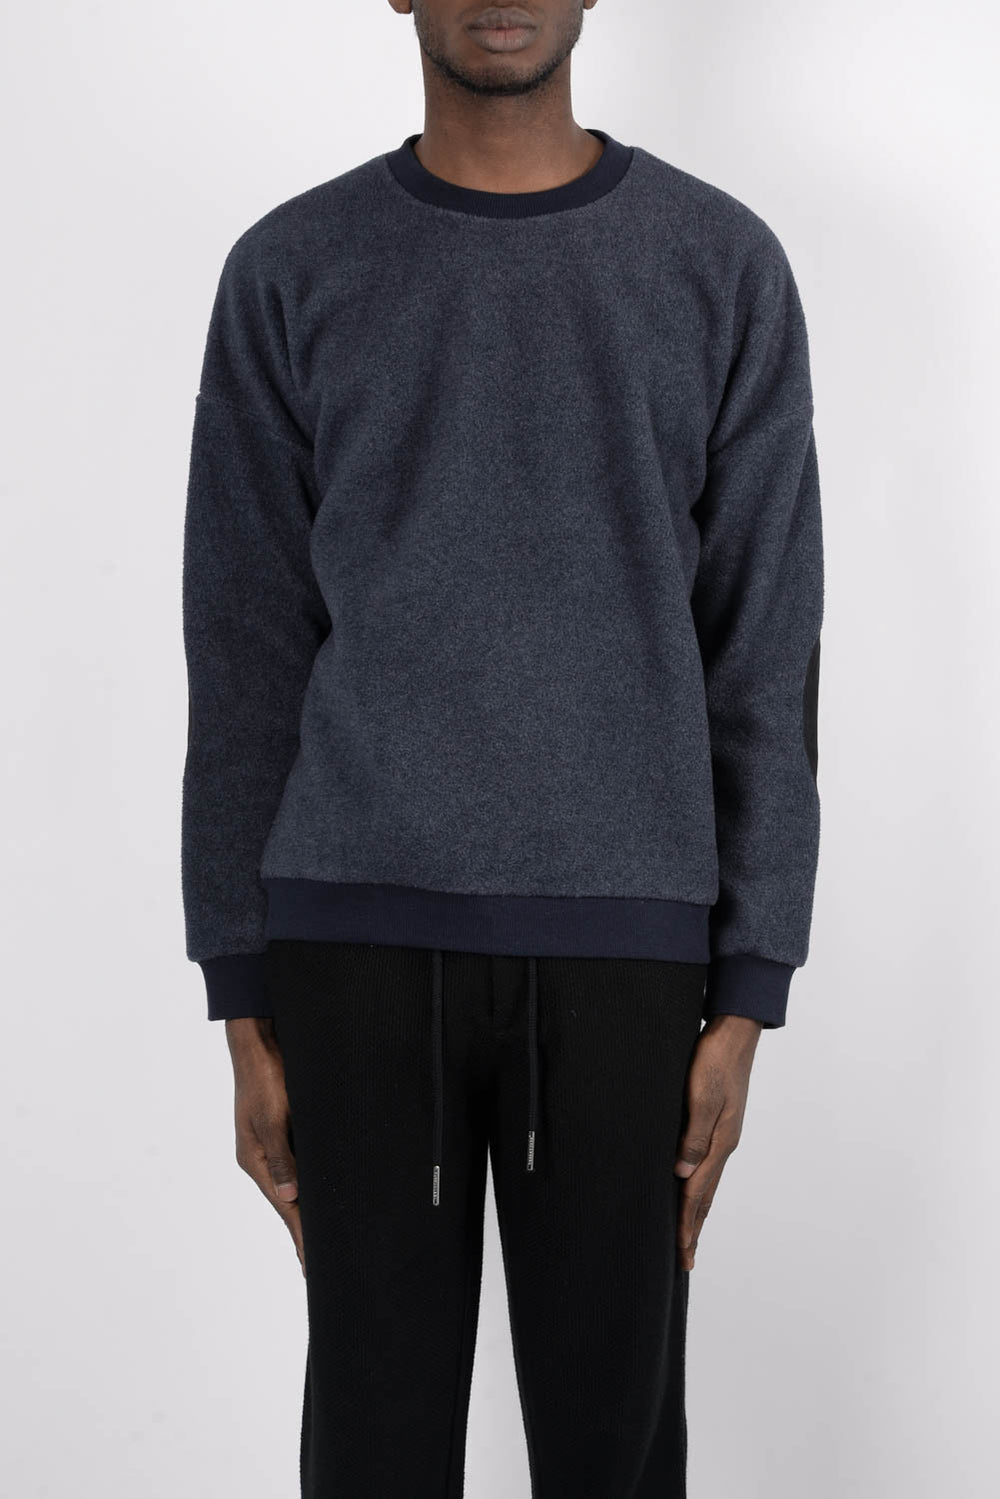 Rochambeau Elbow Patch Crewneck Sweater In Black